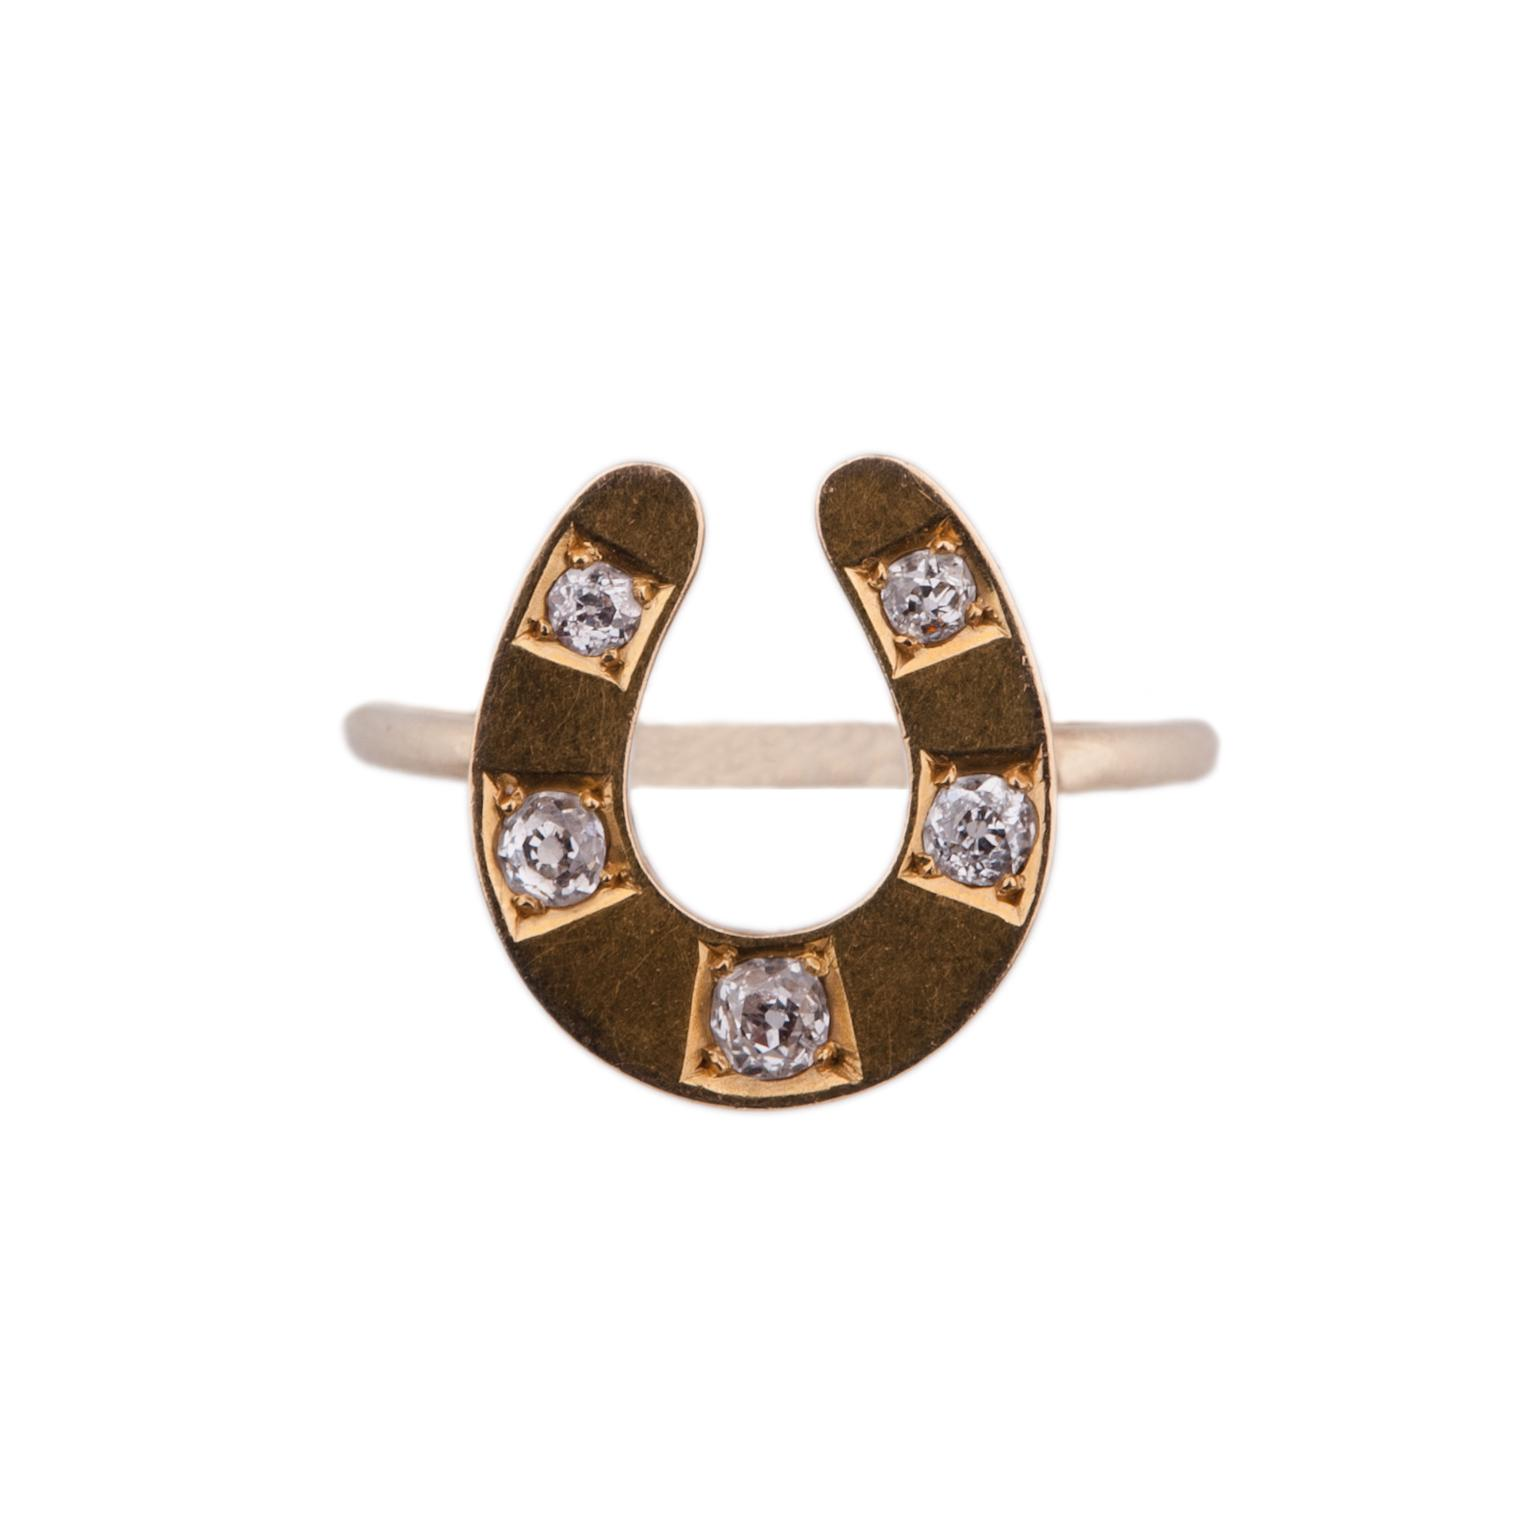 Annina Vogel's gold and rose cut diamond horseshoe ring (£650).